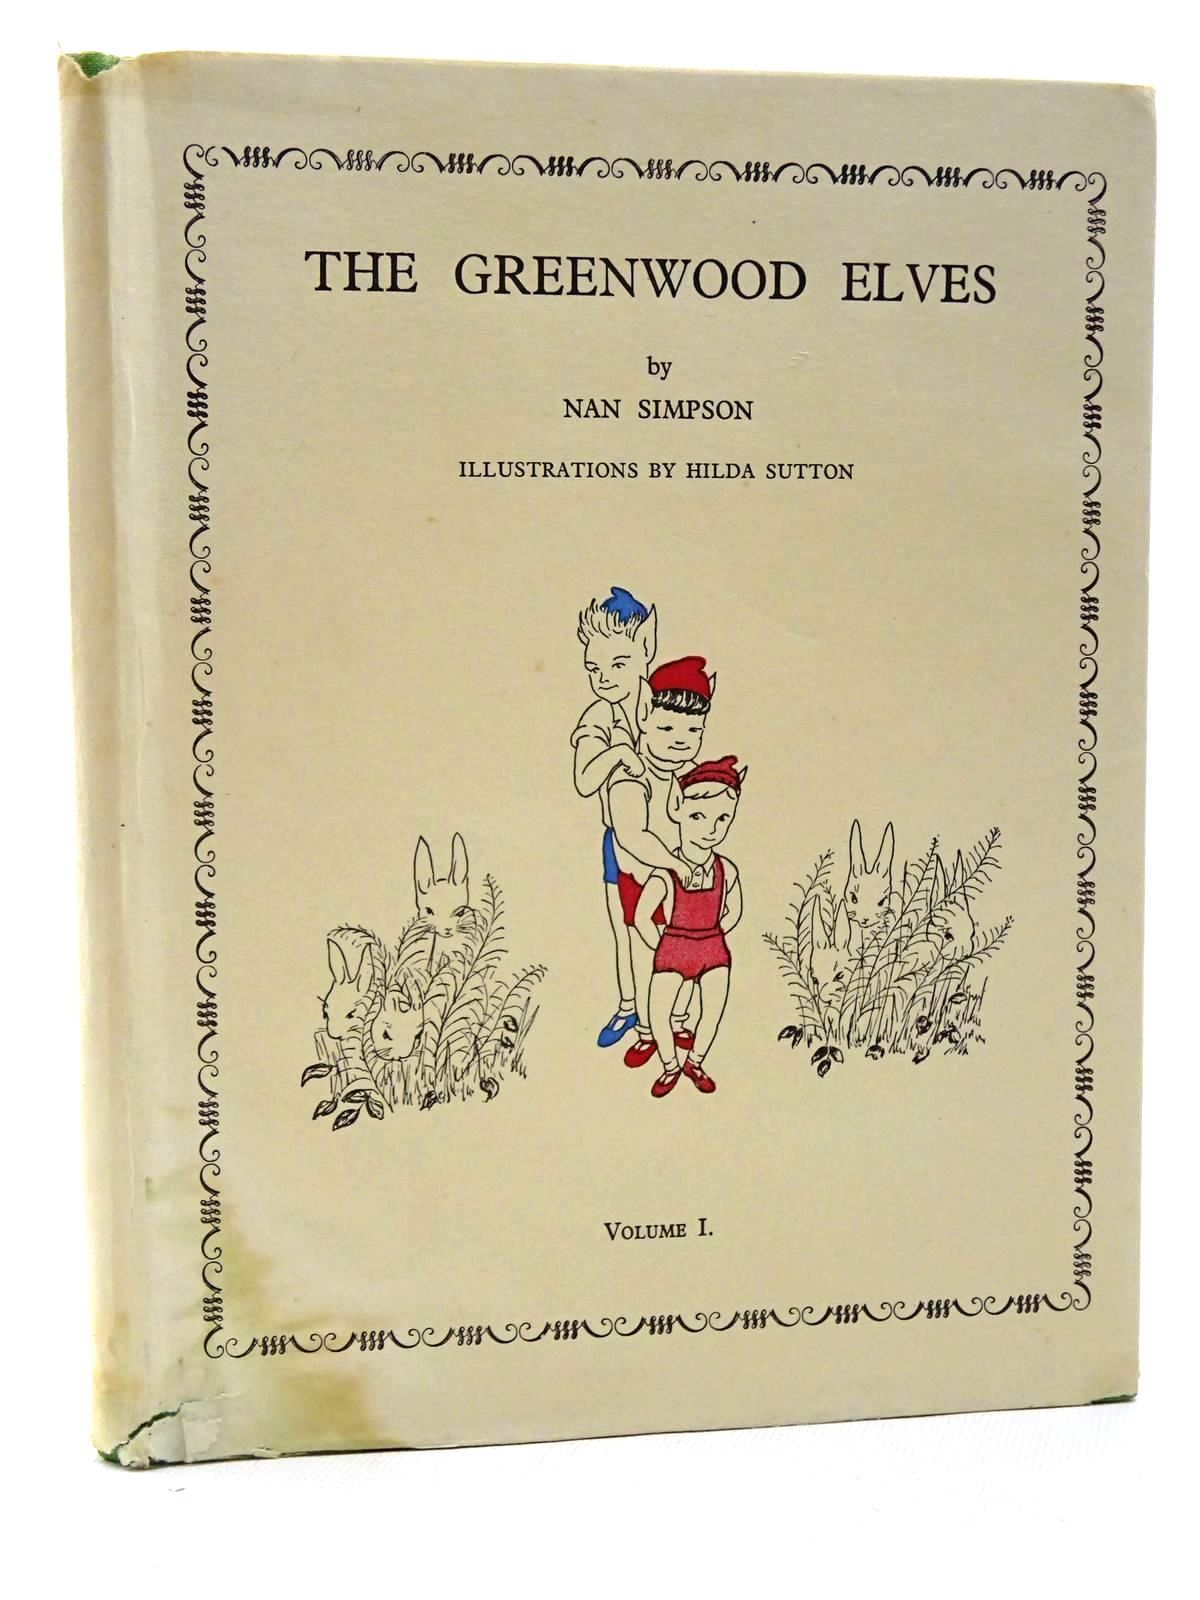 Photo of THE GREENWOOD ELVES VOLUME I written by Simpson, Nan illustrated by Sutton, Hilda published by Titus Wilson & Son, Ltd. (STOCK CODE: 2124210)  for sale by Stella & Rose's Books